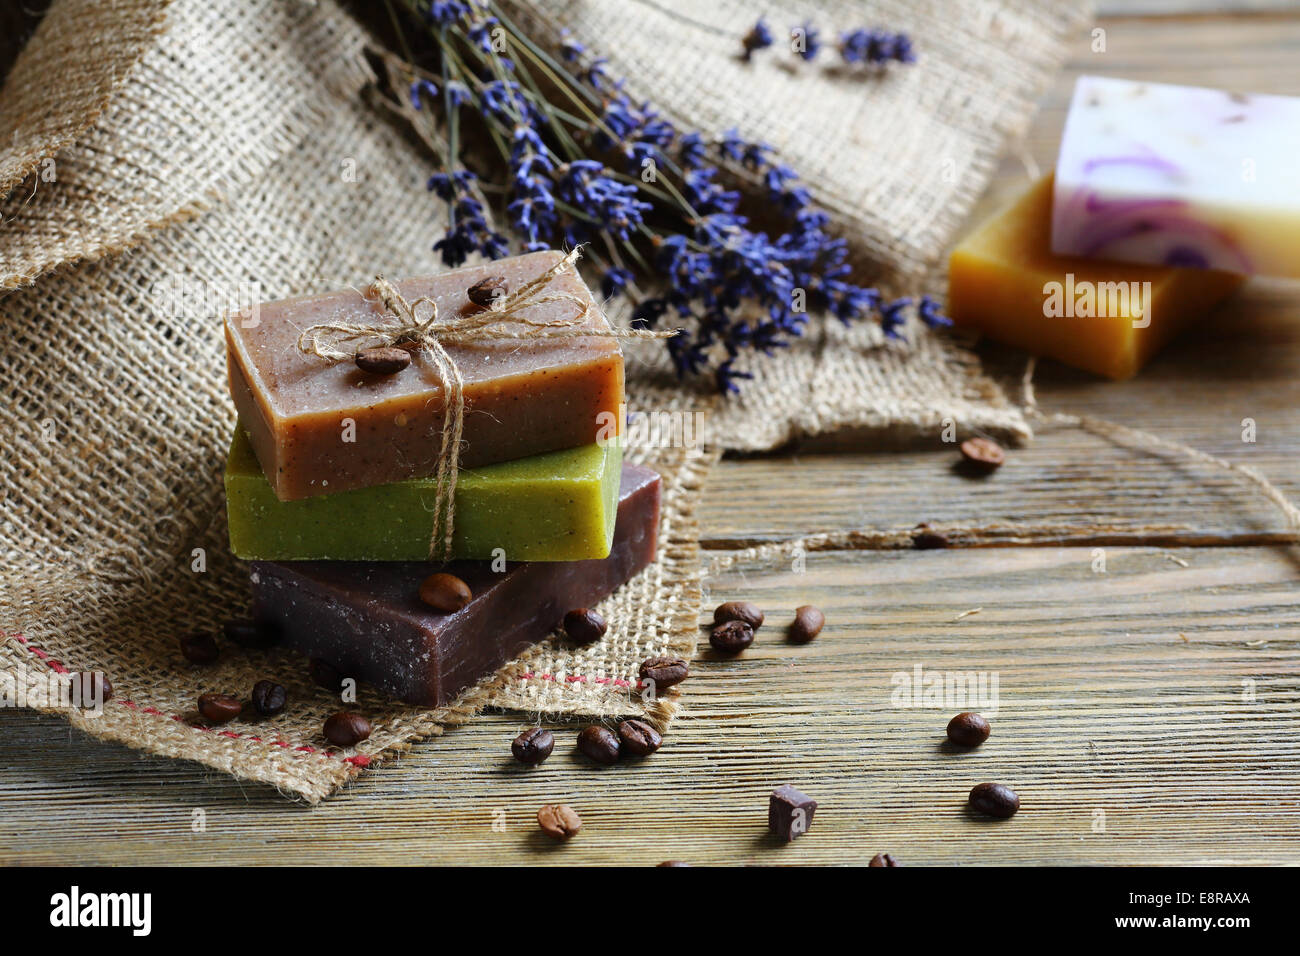 Handmade soap on wooden boards with coffee beans, toiletries close up - Stock Image